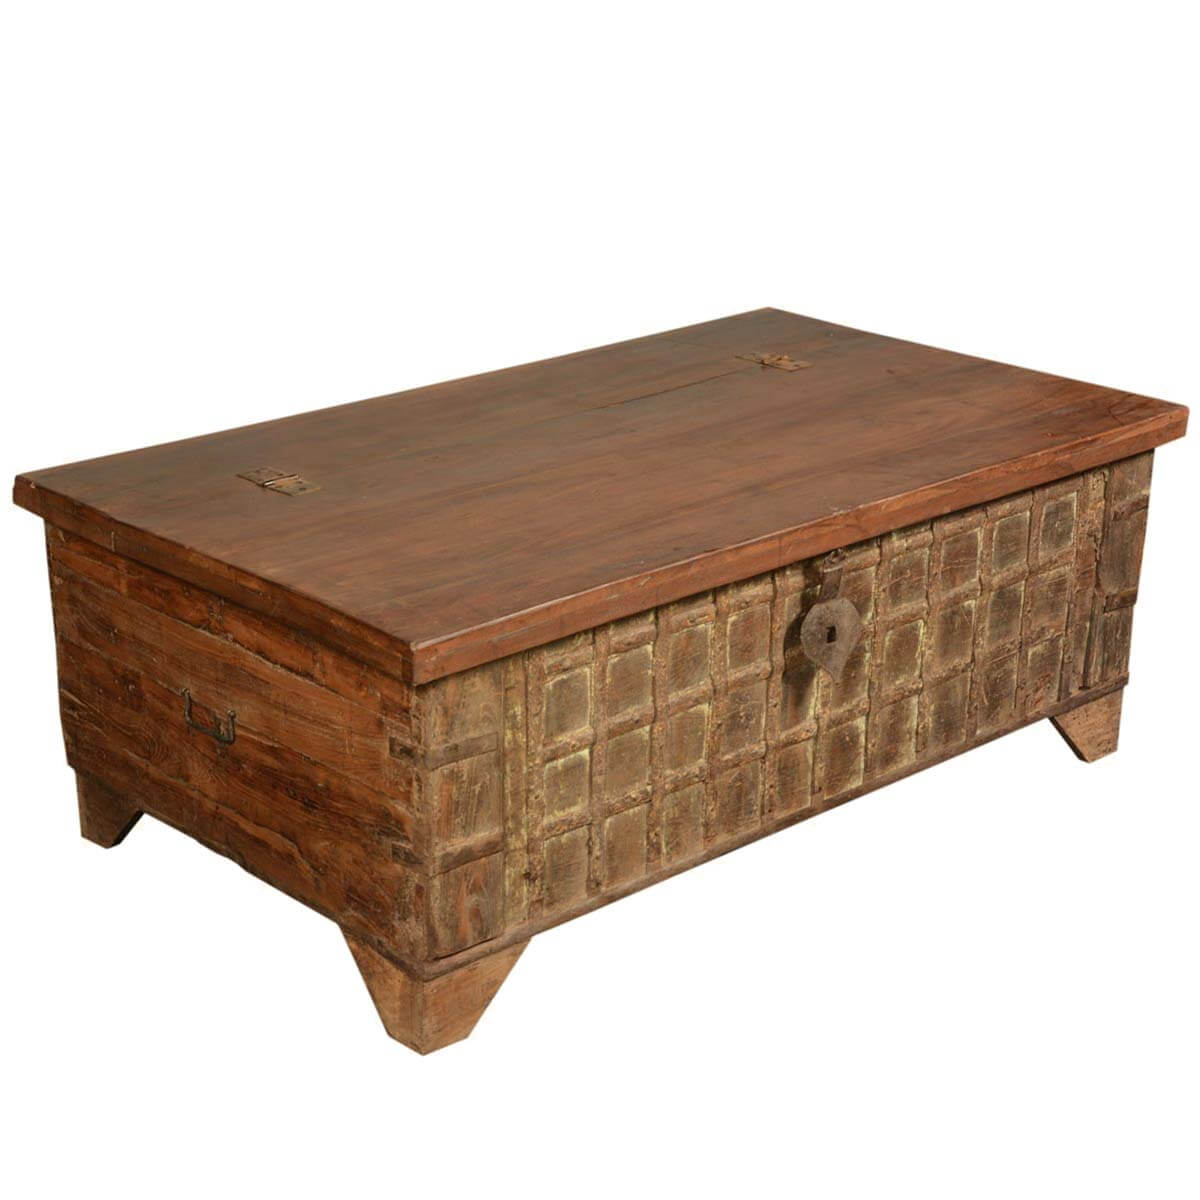 Gothic Treasure Reclaimed Wood Coffee Table Storage Box Chest